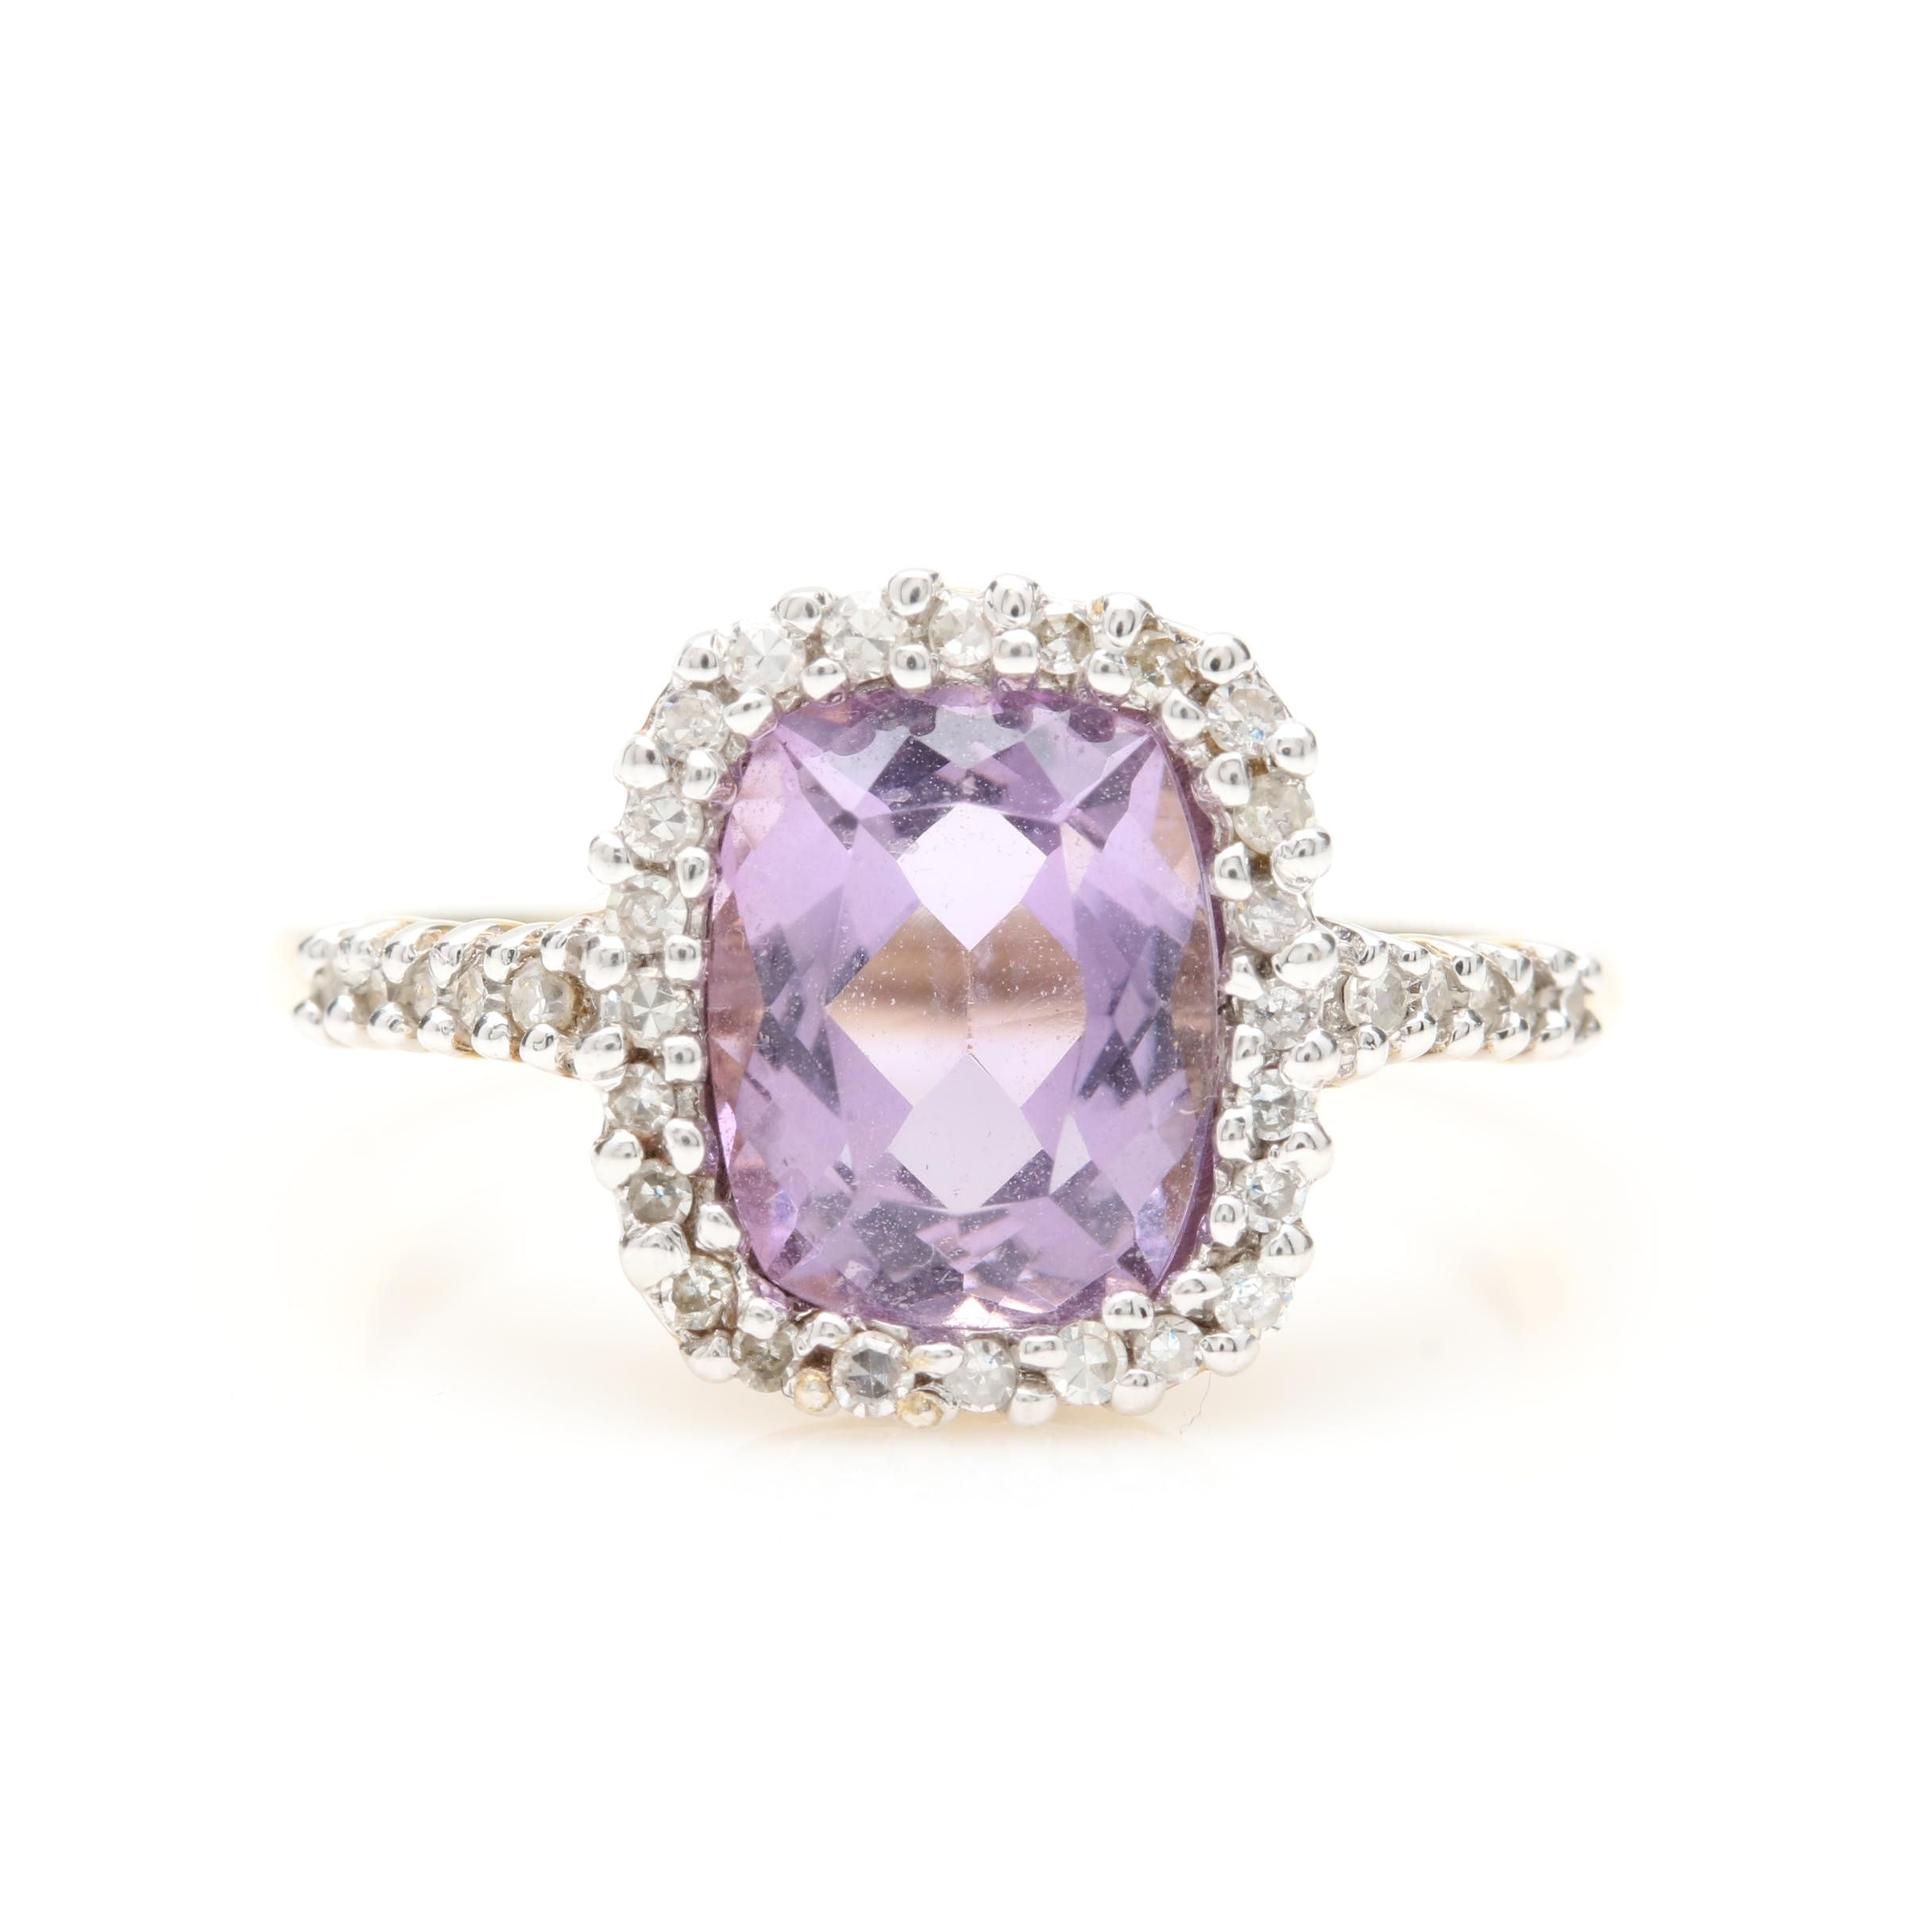 9K Yellow Gold Amethyst and Diamond Ring with 9K White Gold Accents